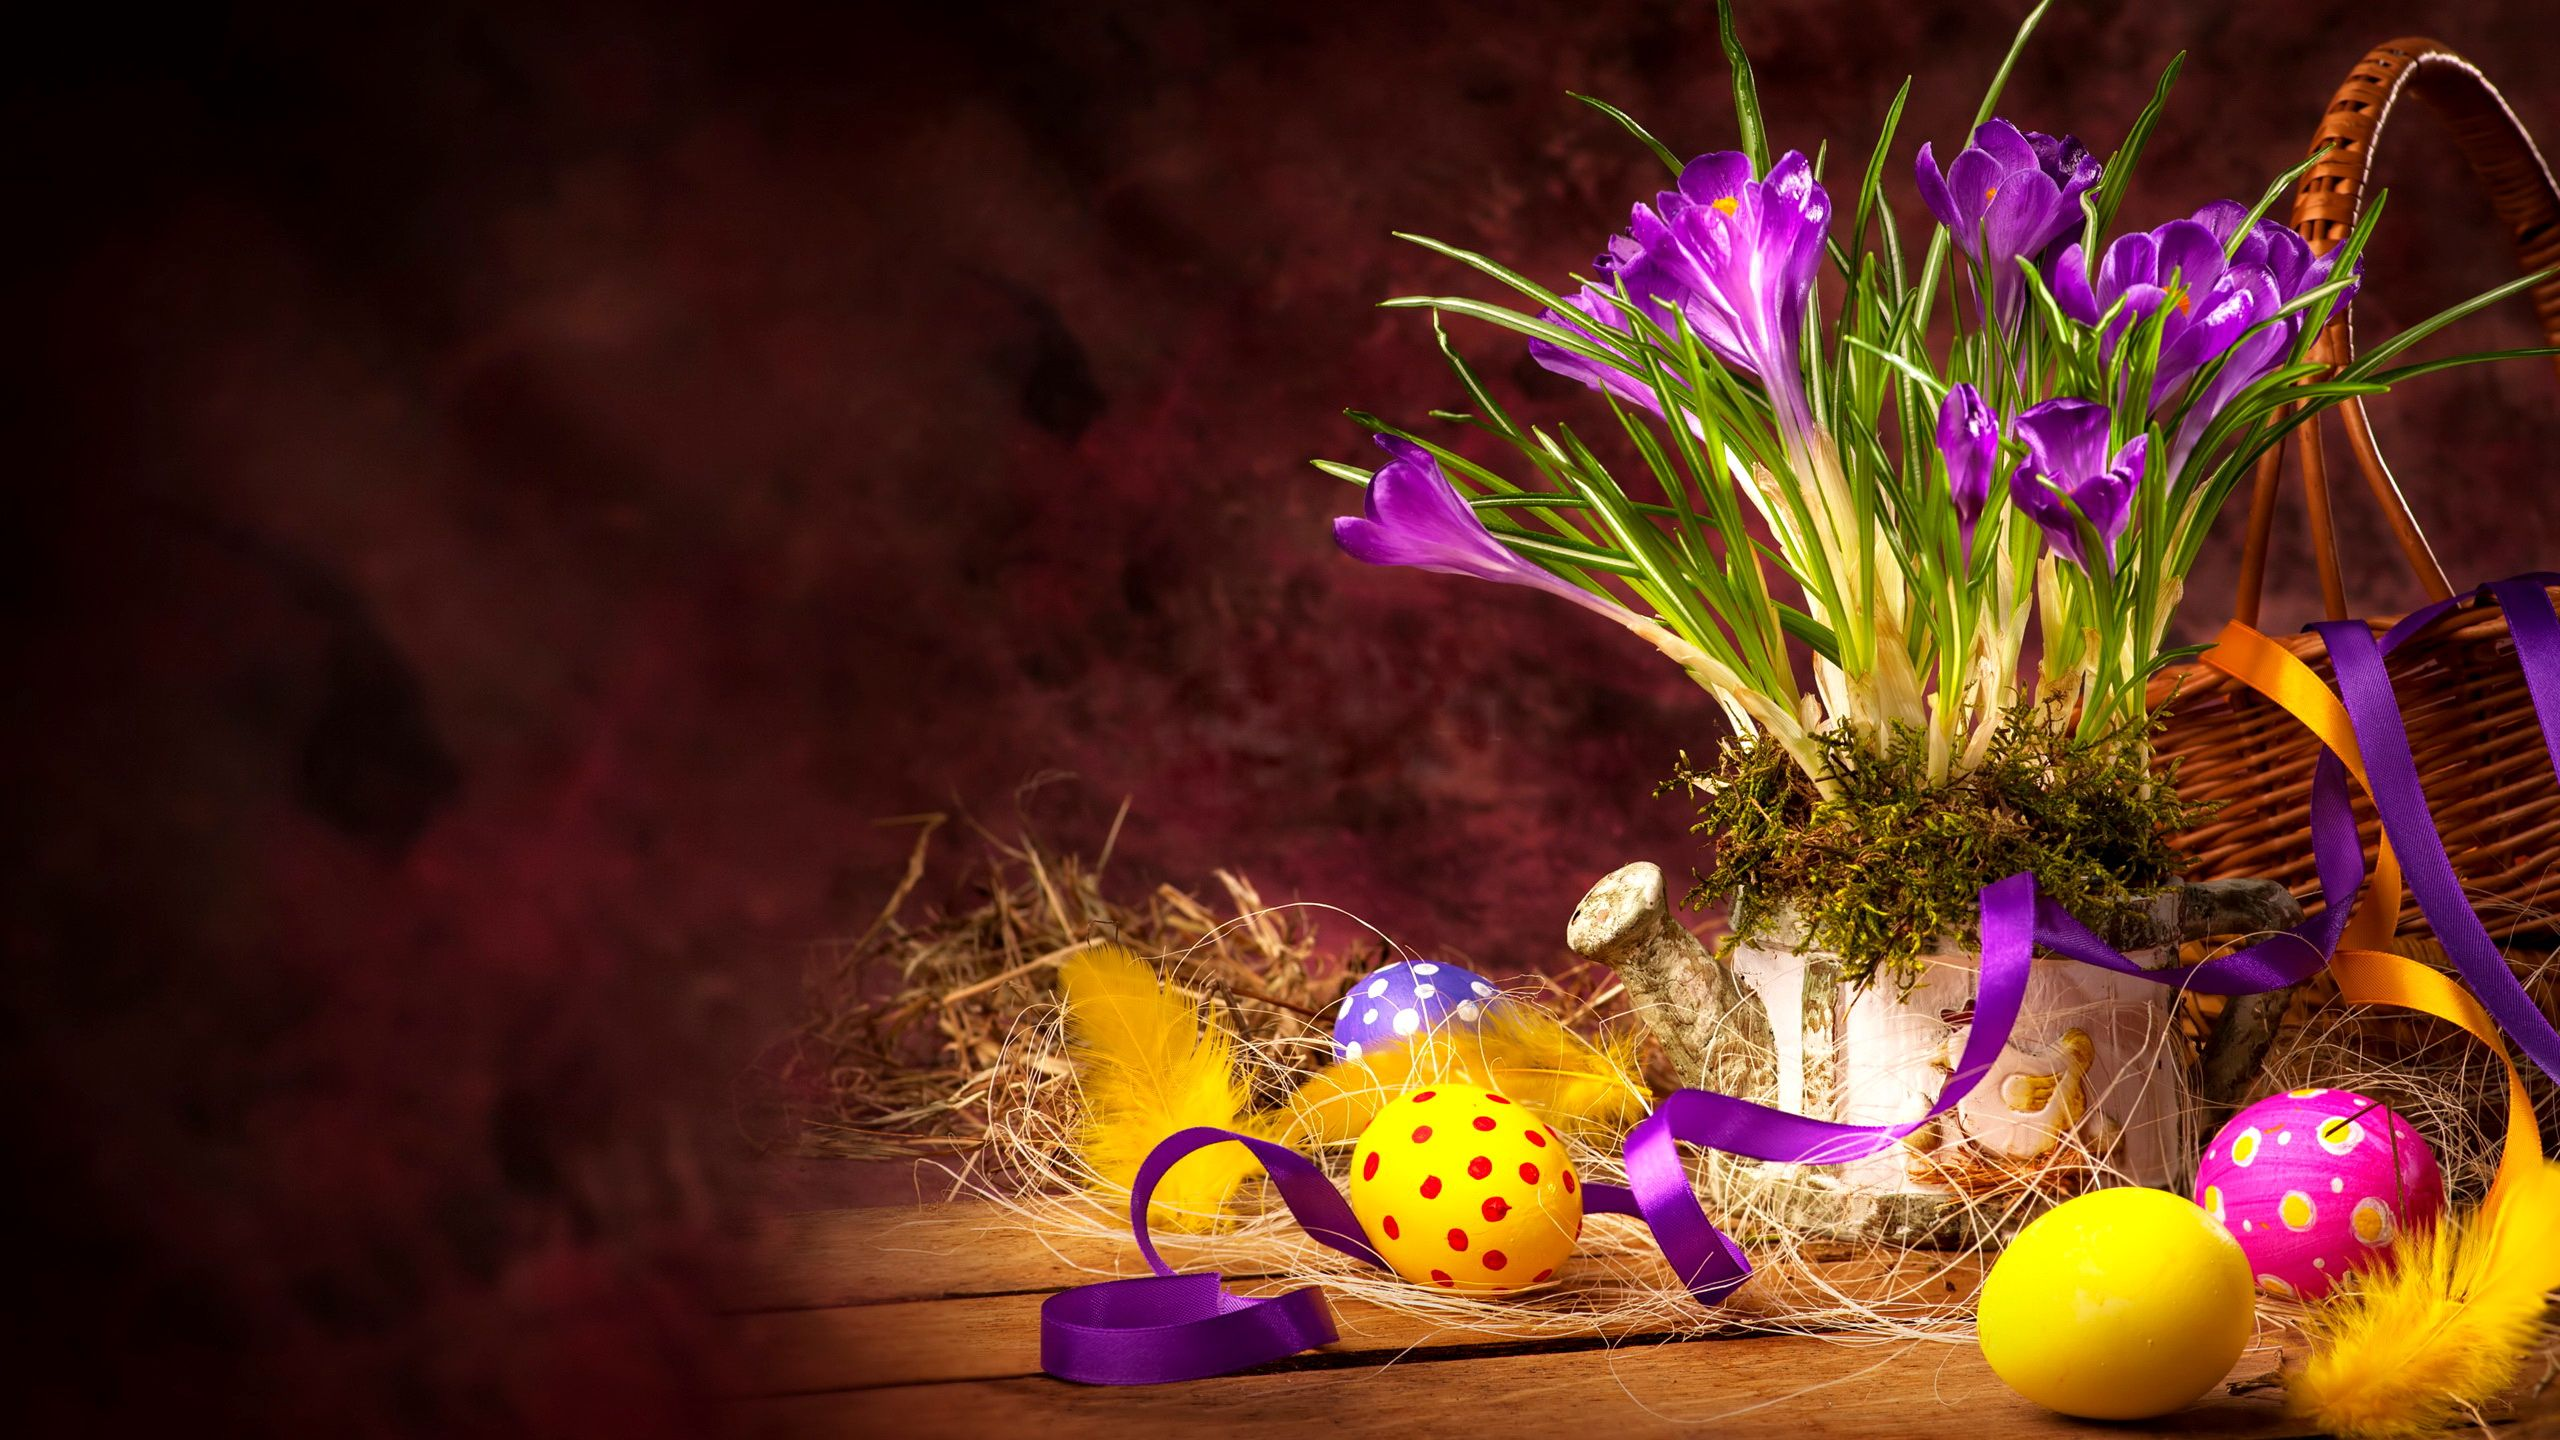 Hd wallpaper easter - Hd Happy Easter Wallpaper Download Free 2560x1440px 3d Easter